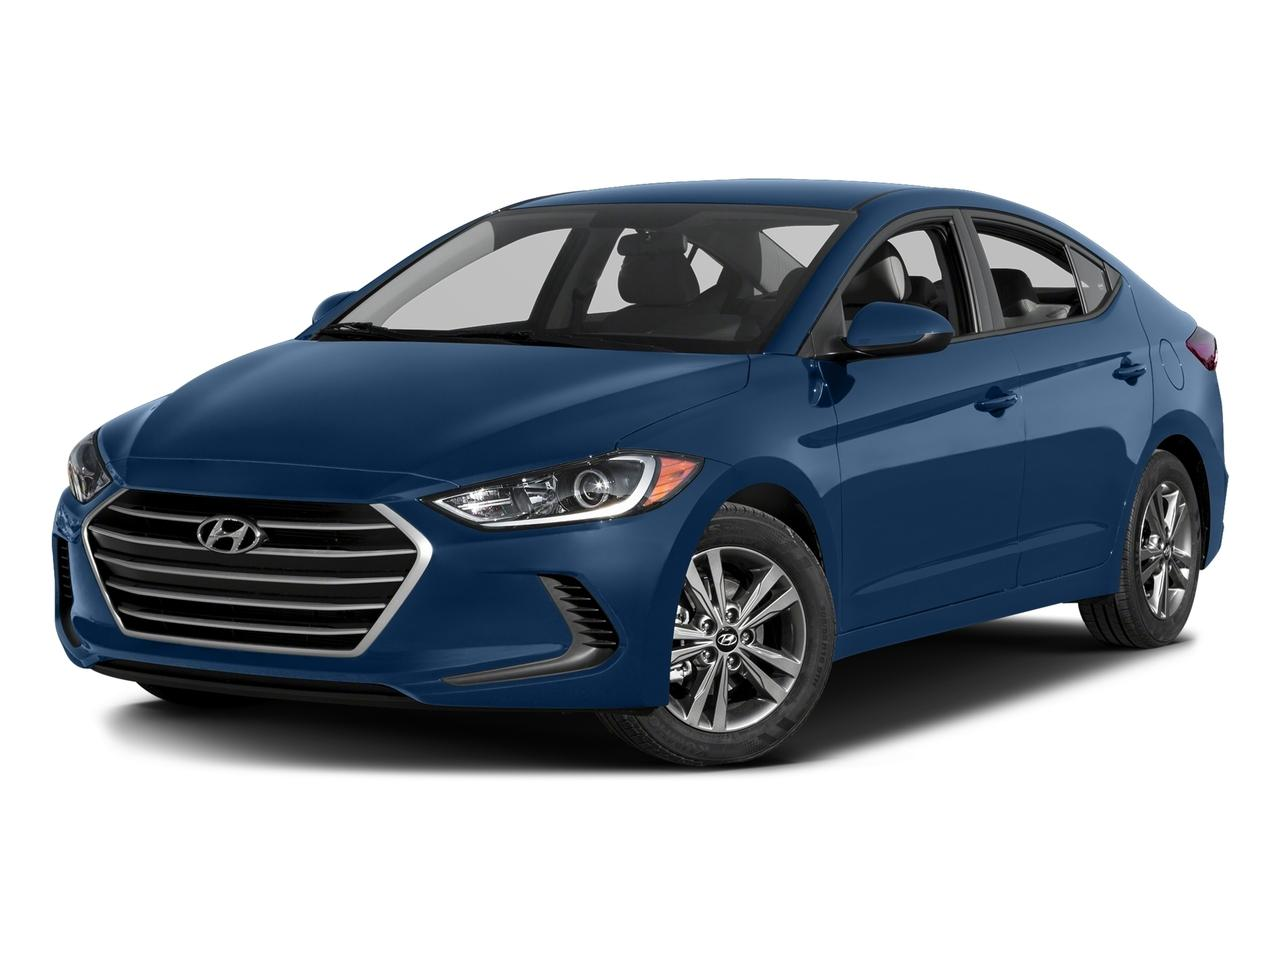 2017 Hyundai Elantra Vehicle Photo in Quakertown, PA 18951